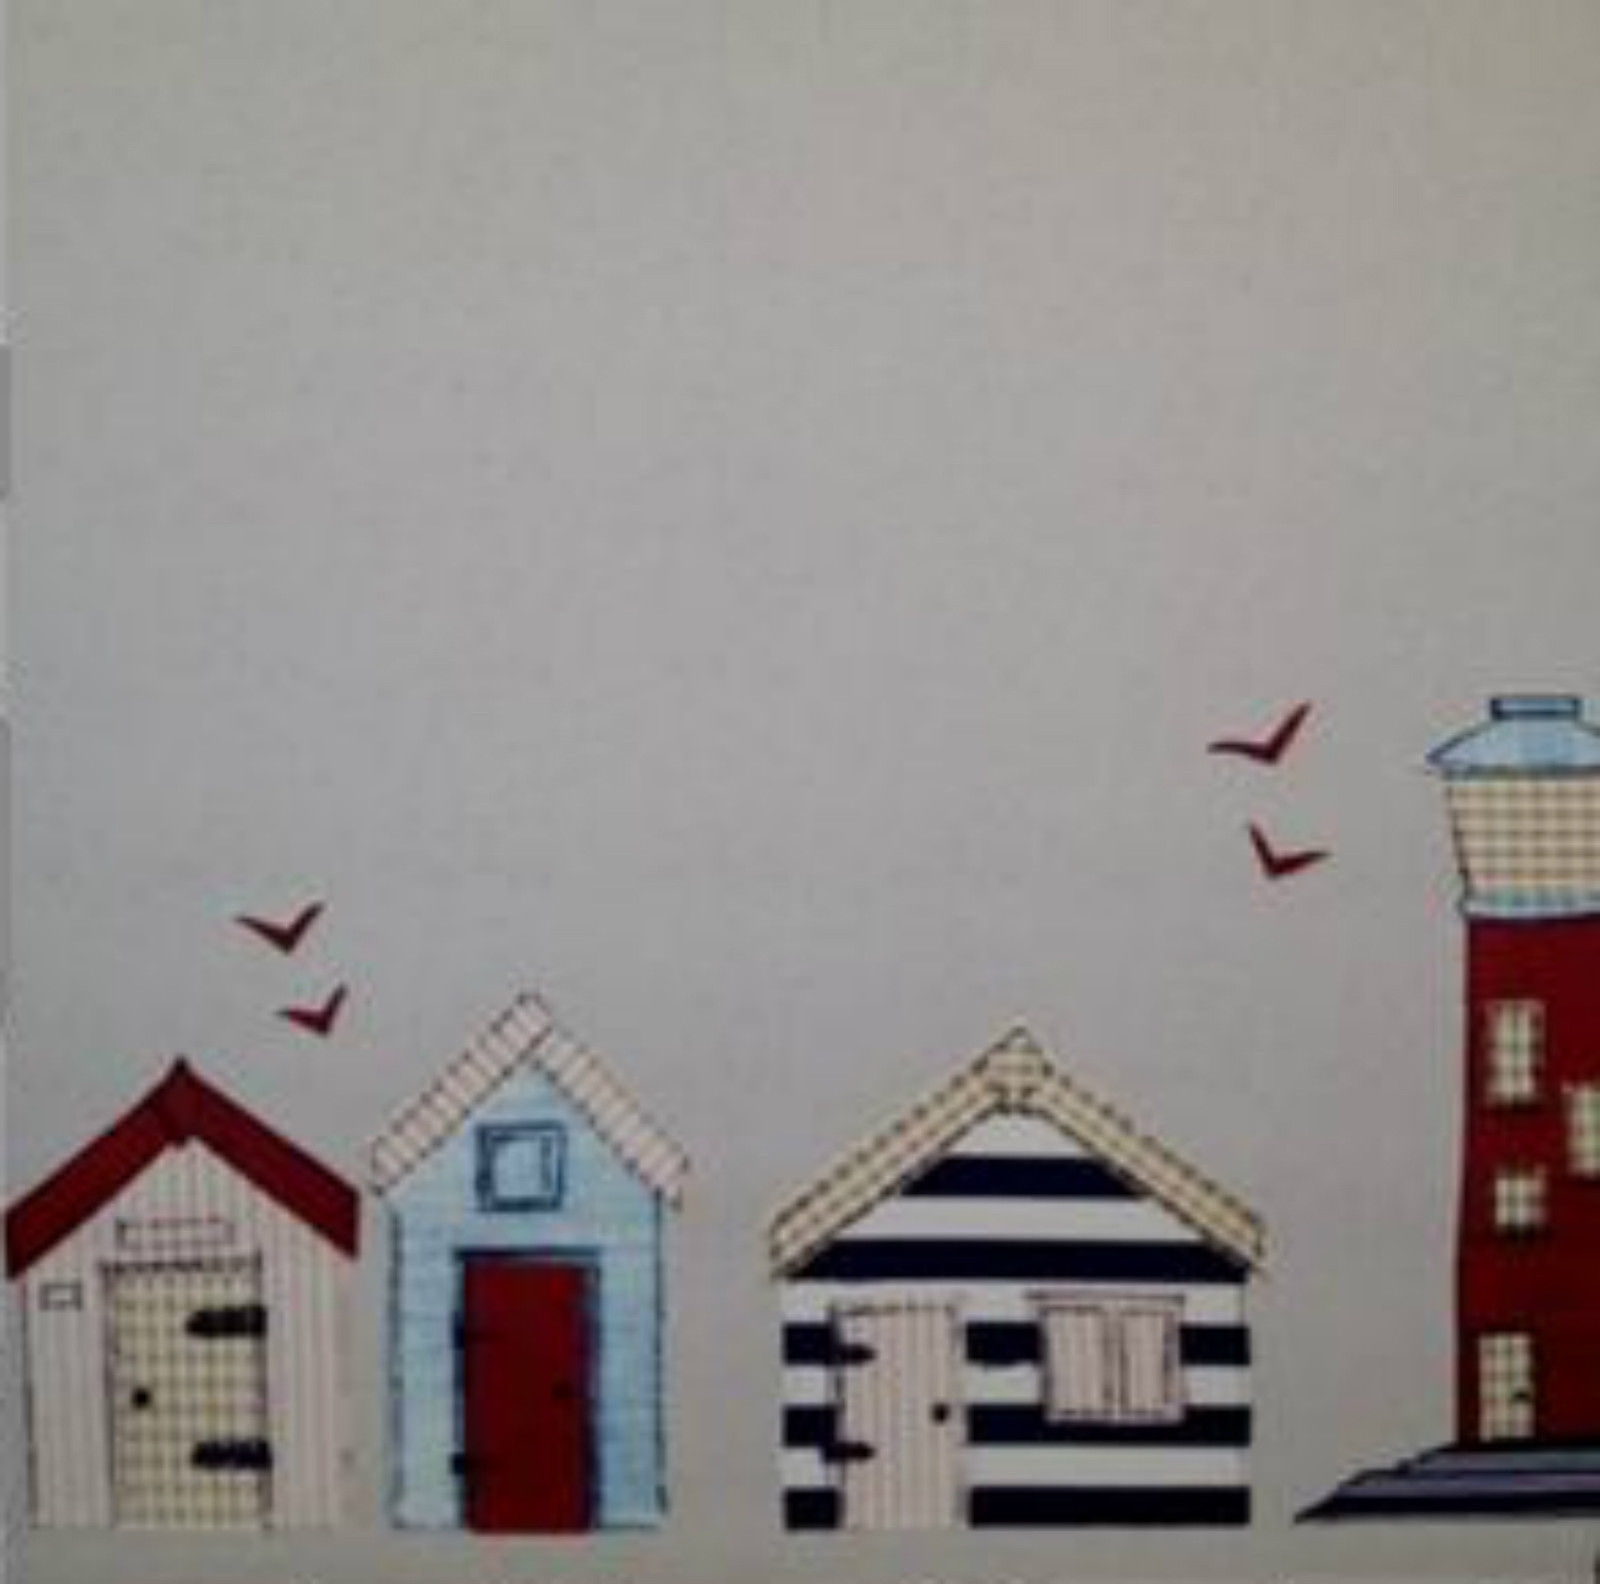 Beach Hut Daylight Roller Blind Blinds Beachhuts And Lighthouse In Patterned Roller Blind (Image 2 of 15)